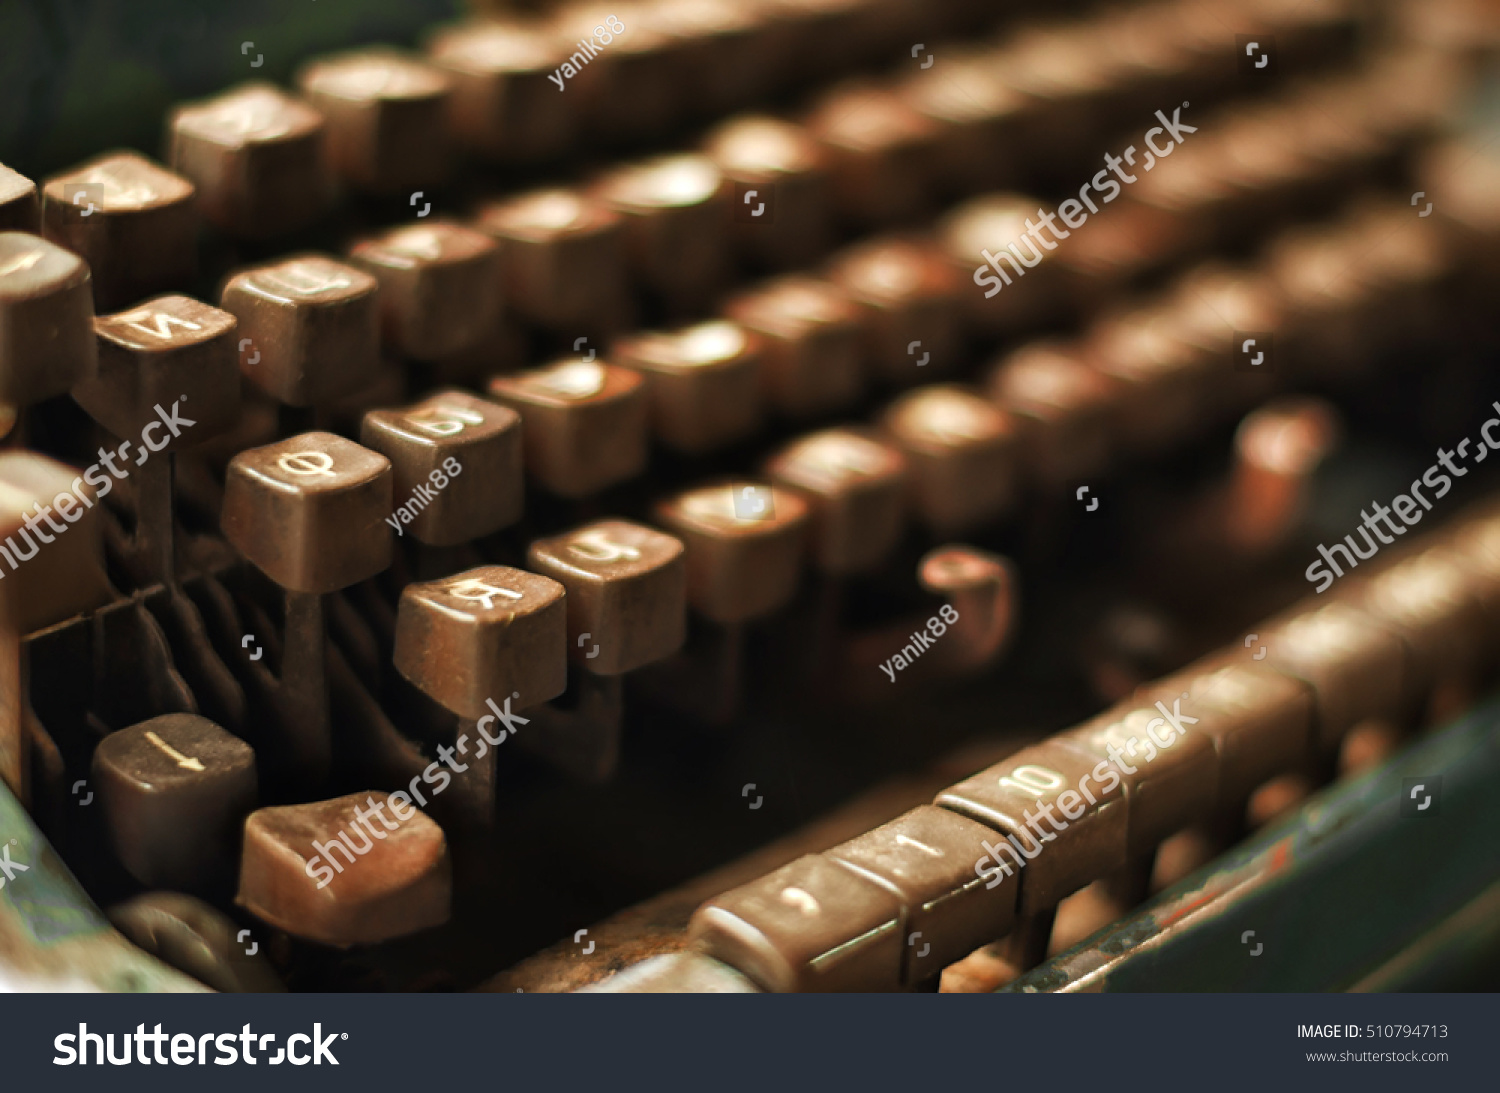 d8f2000f978 Old Russian Vintage Typewriter Button Stock Photo (Edit Now ...